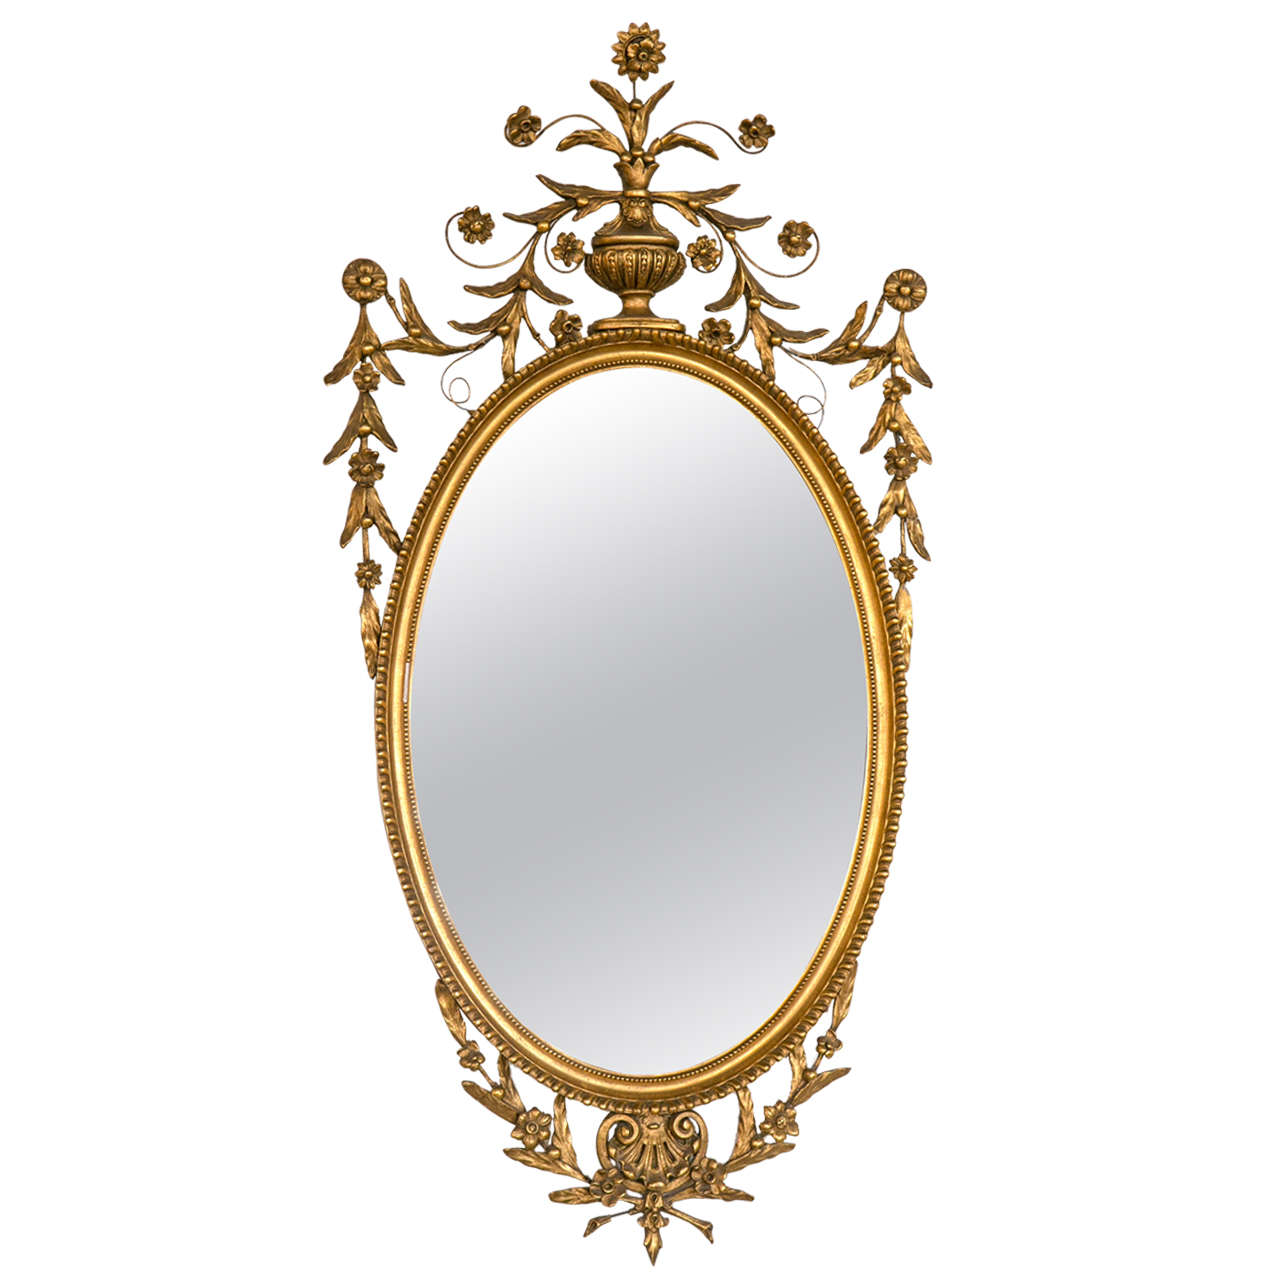 Arched gilt mirror at 1stdibs - Antique Oval Gilt Gold Georgian Mirror 1